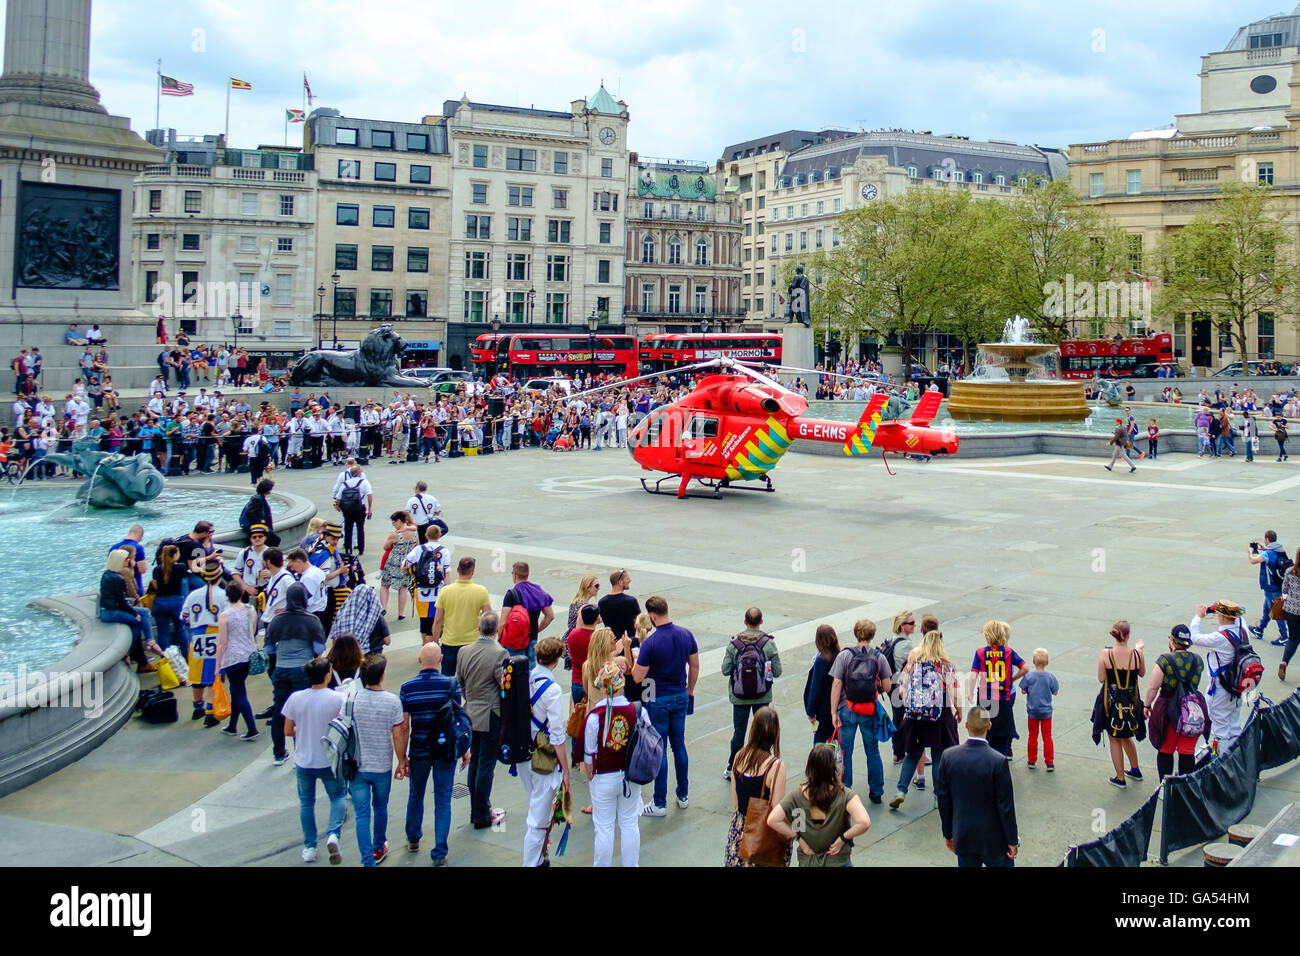 An emergency HEMS helicopter landing in Trafalgar Square, London - Stock Image